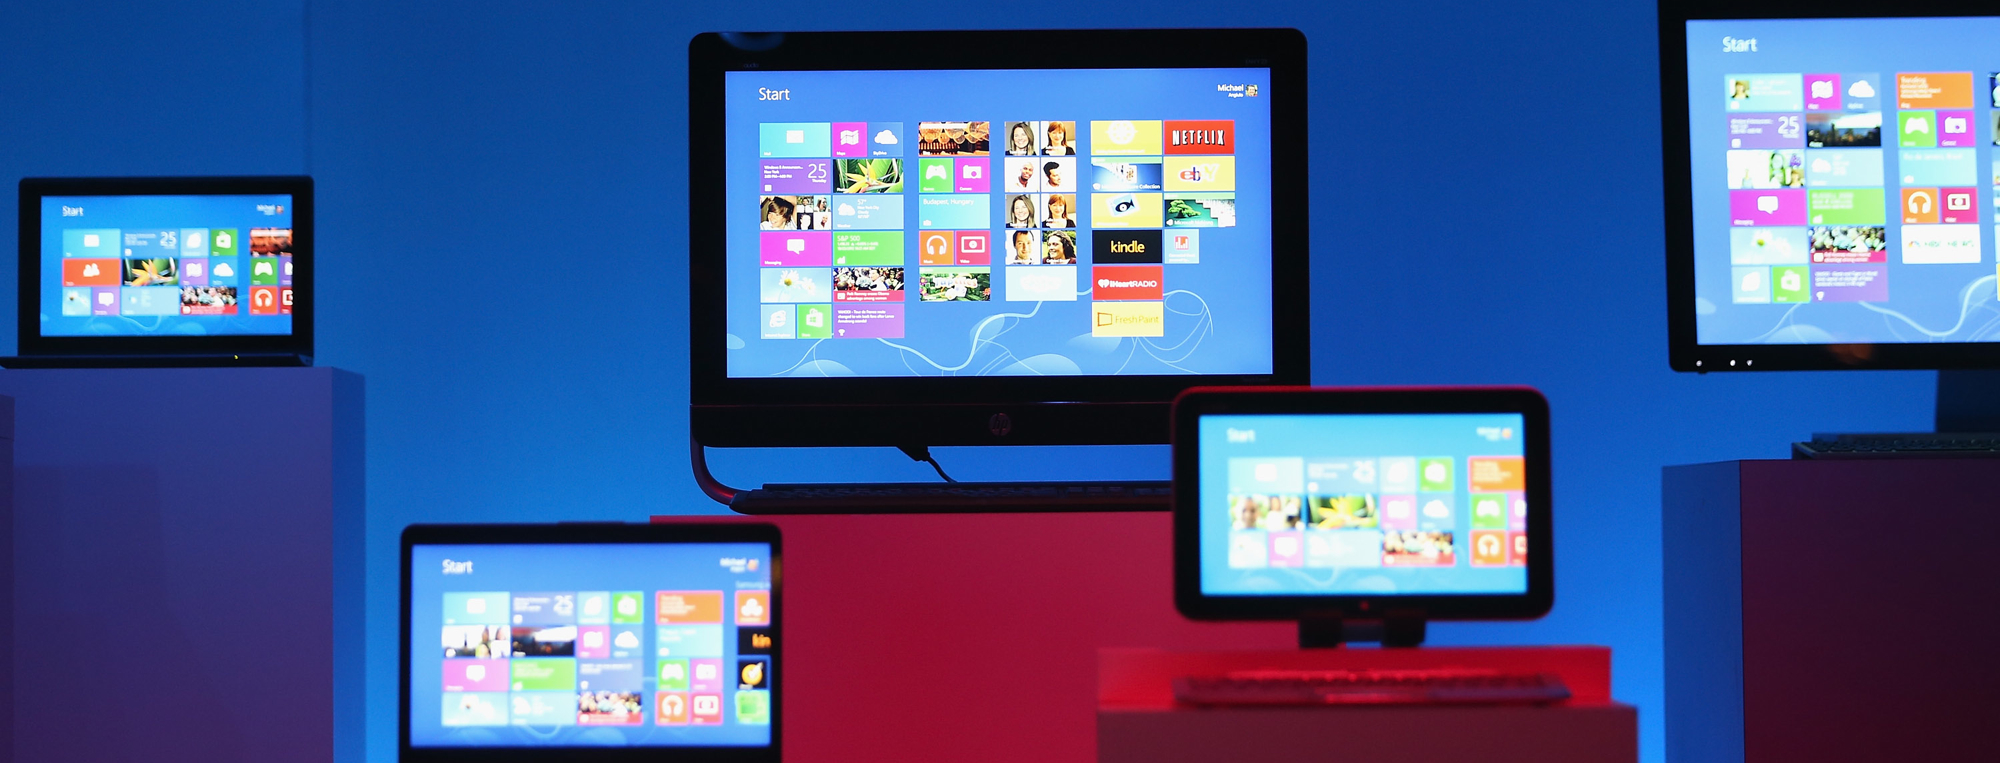 After 15 months, Windows 8 has sold 100 million fewer copies than Windows 7 did